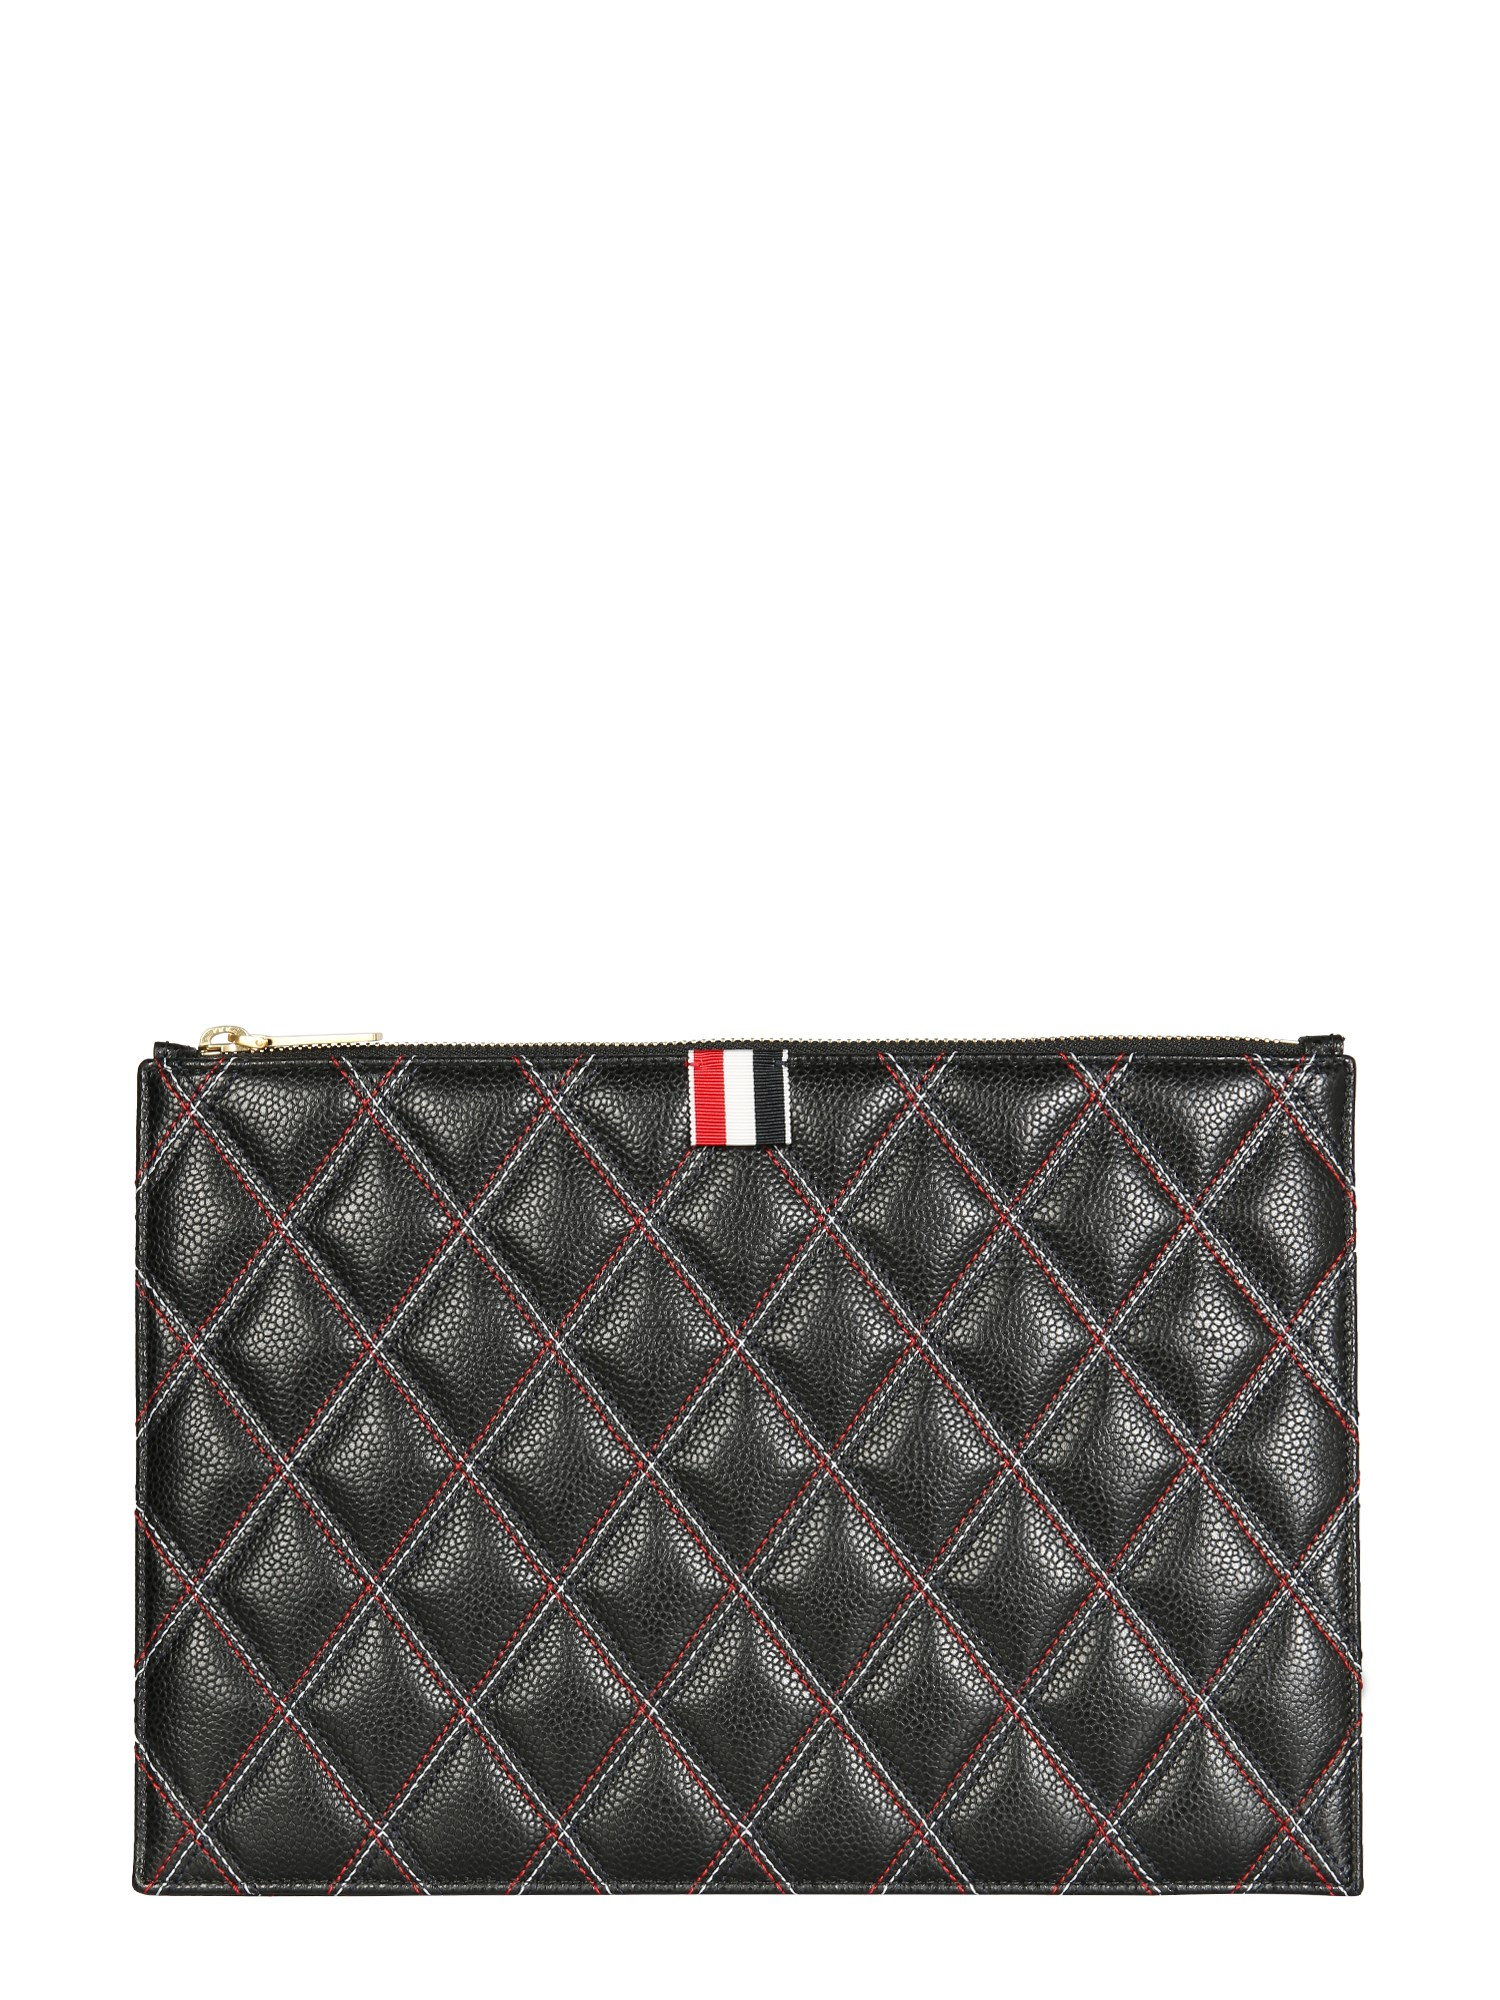 thom browne small document holder with logo